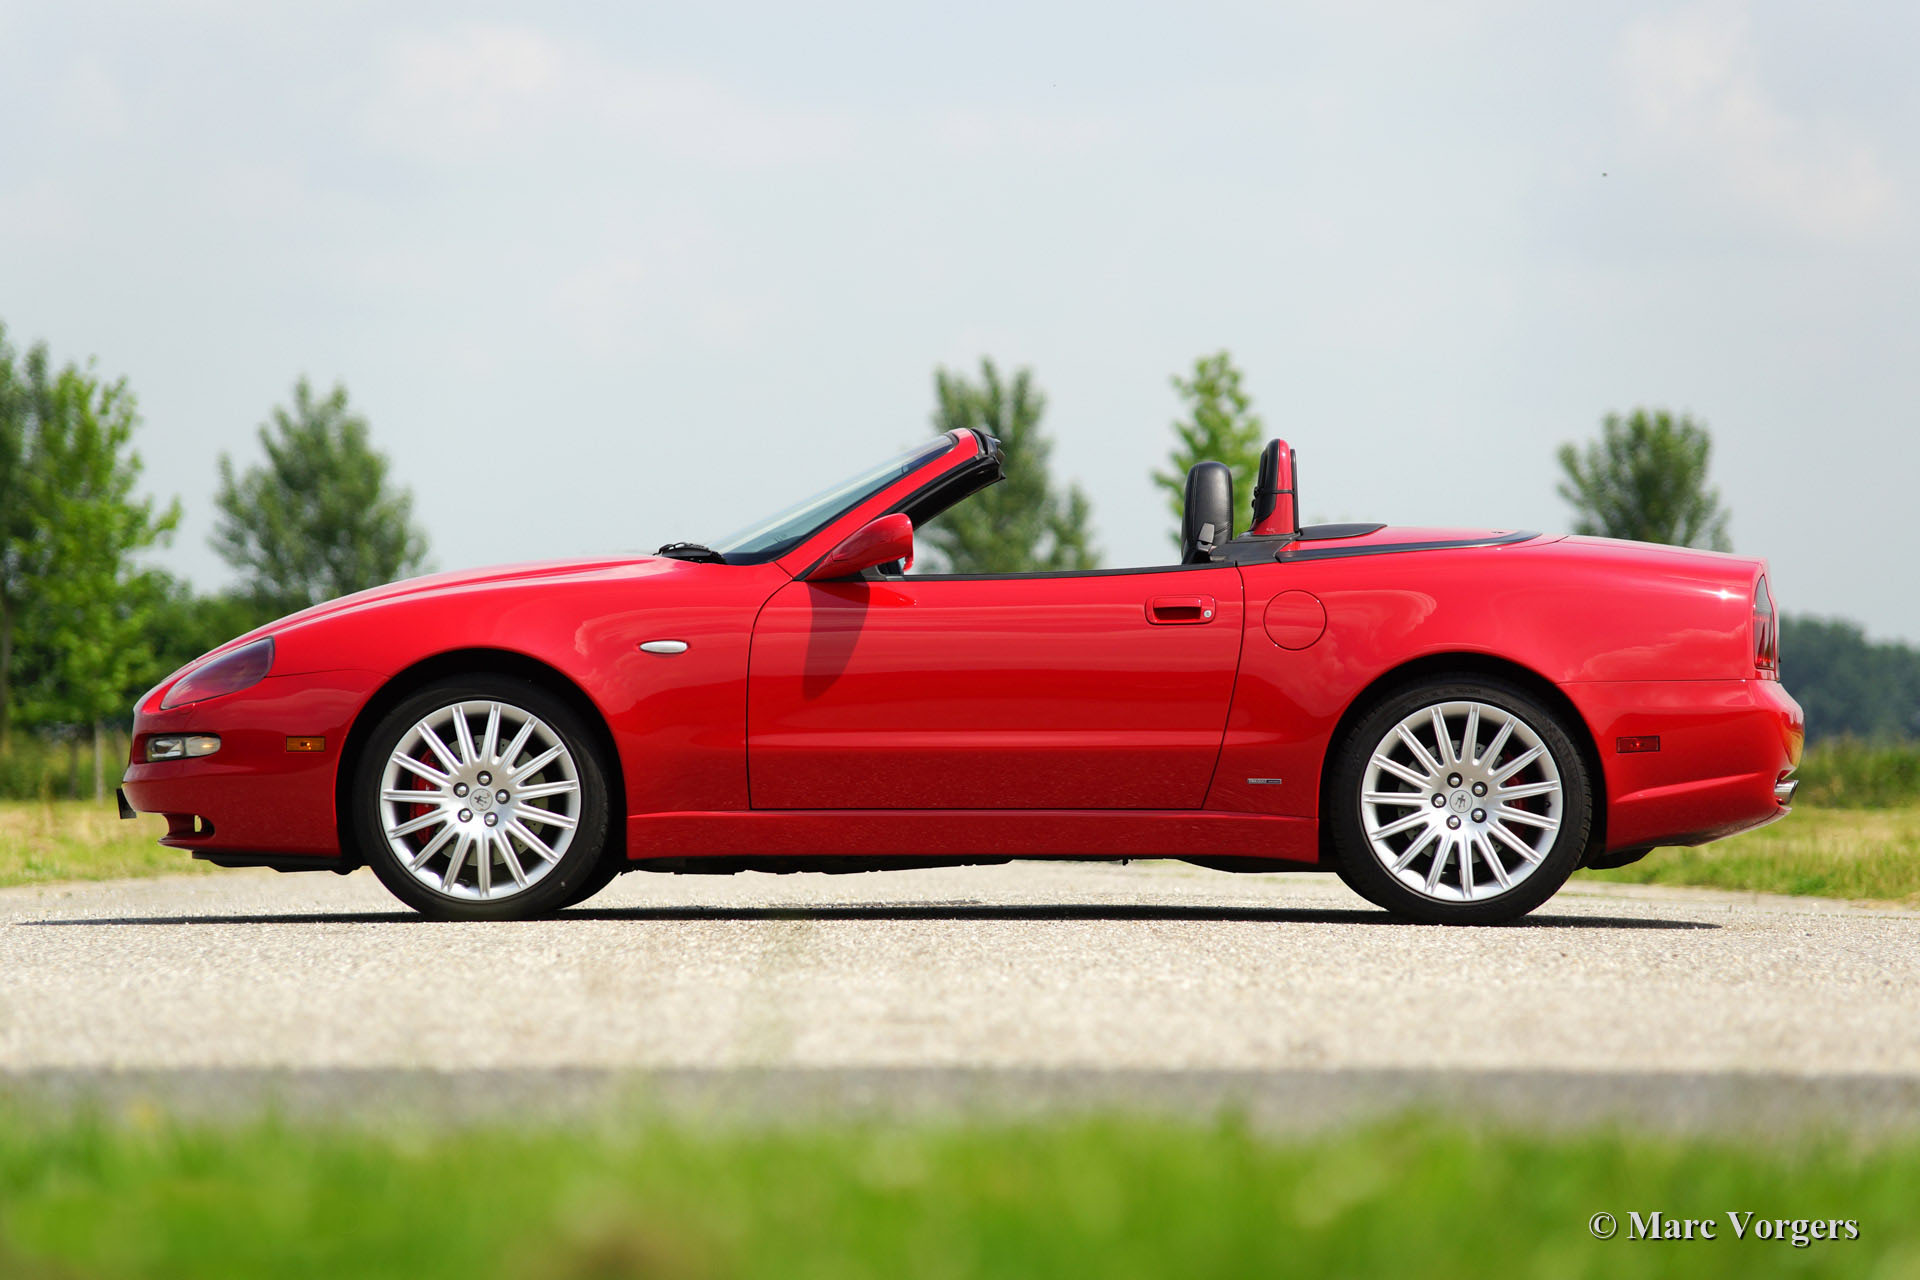 maserati-001 Interesting Info About Maserati Spyder for Sale with Breathtaking Photos Cars Review